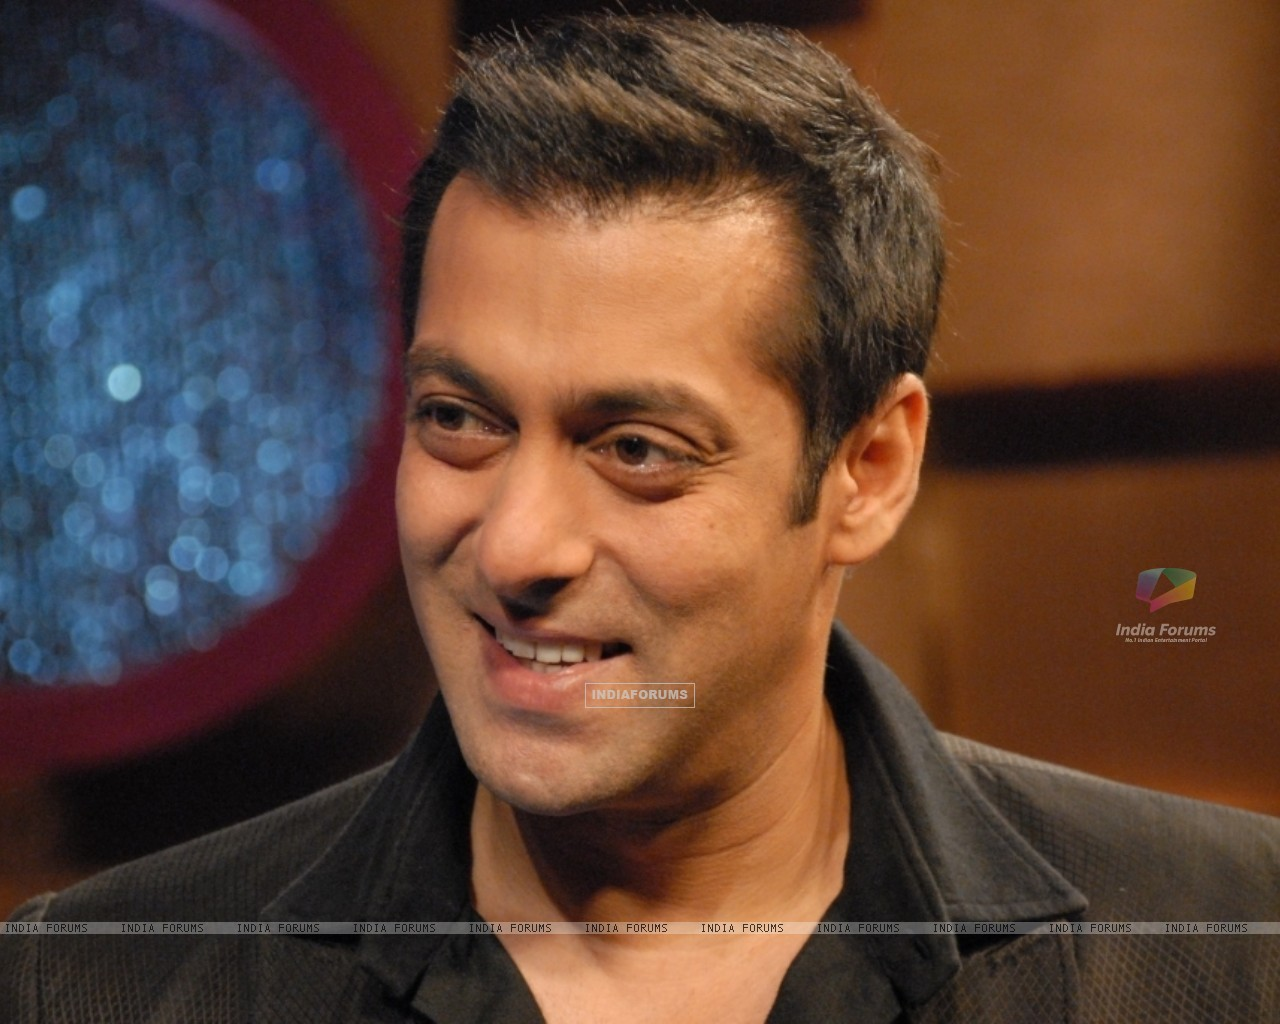 Salman Khan in tv show Lift Kara De (41720) size:1280x1024